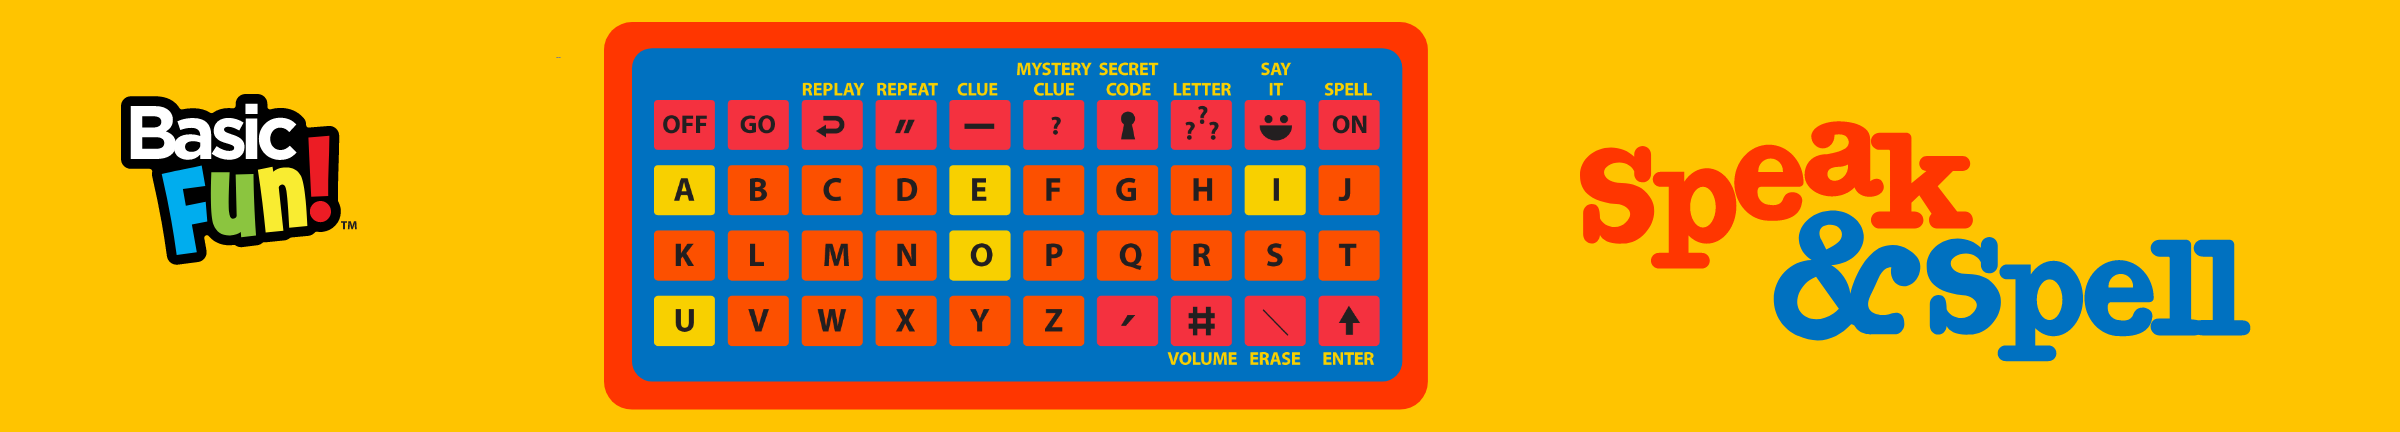 Arcade Classics | Speak & Spell | Basic Fun!